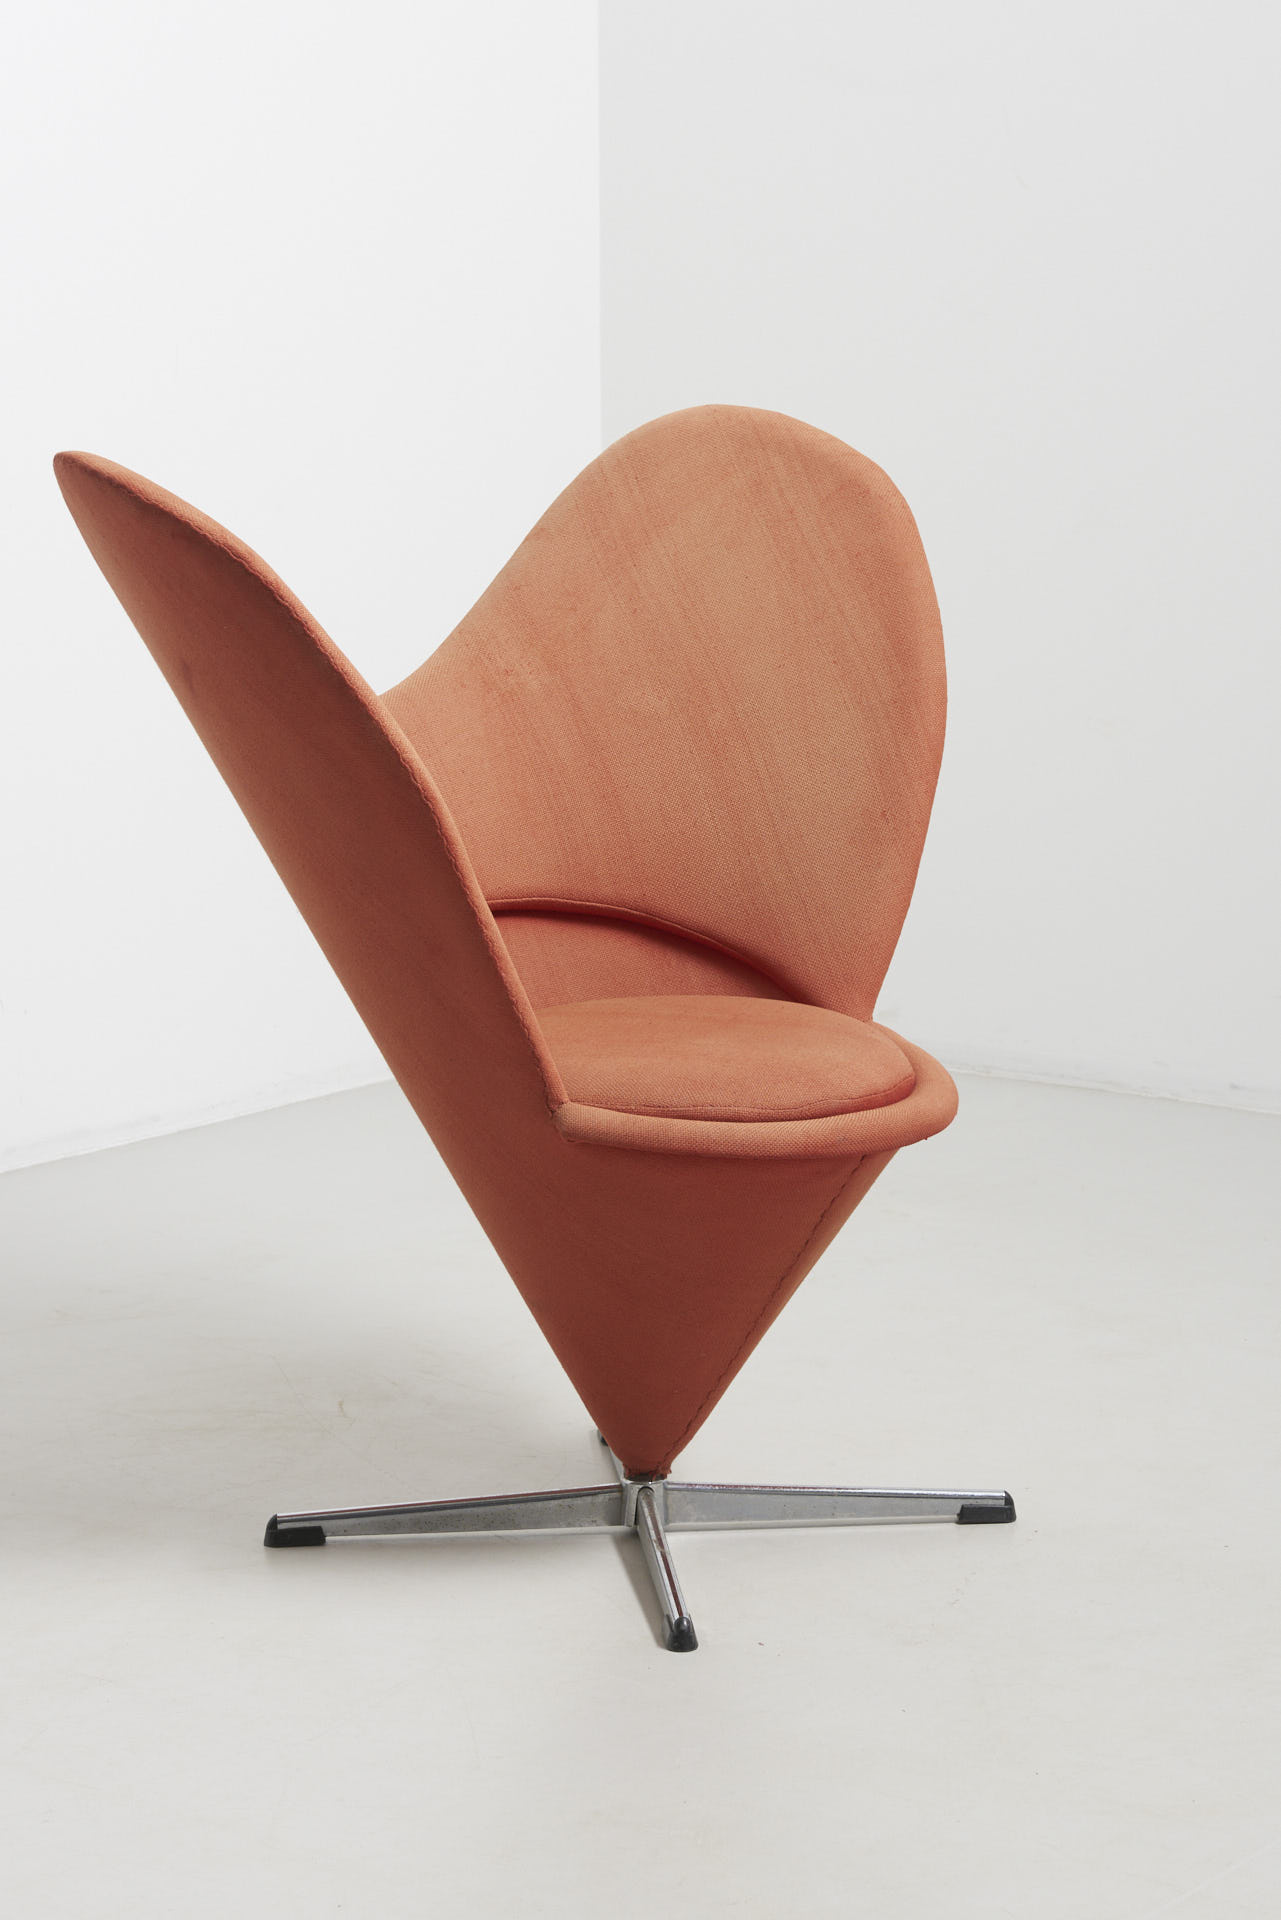 modestfurniture-vintage-2379-verner-panton-heart-cone-chair02